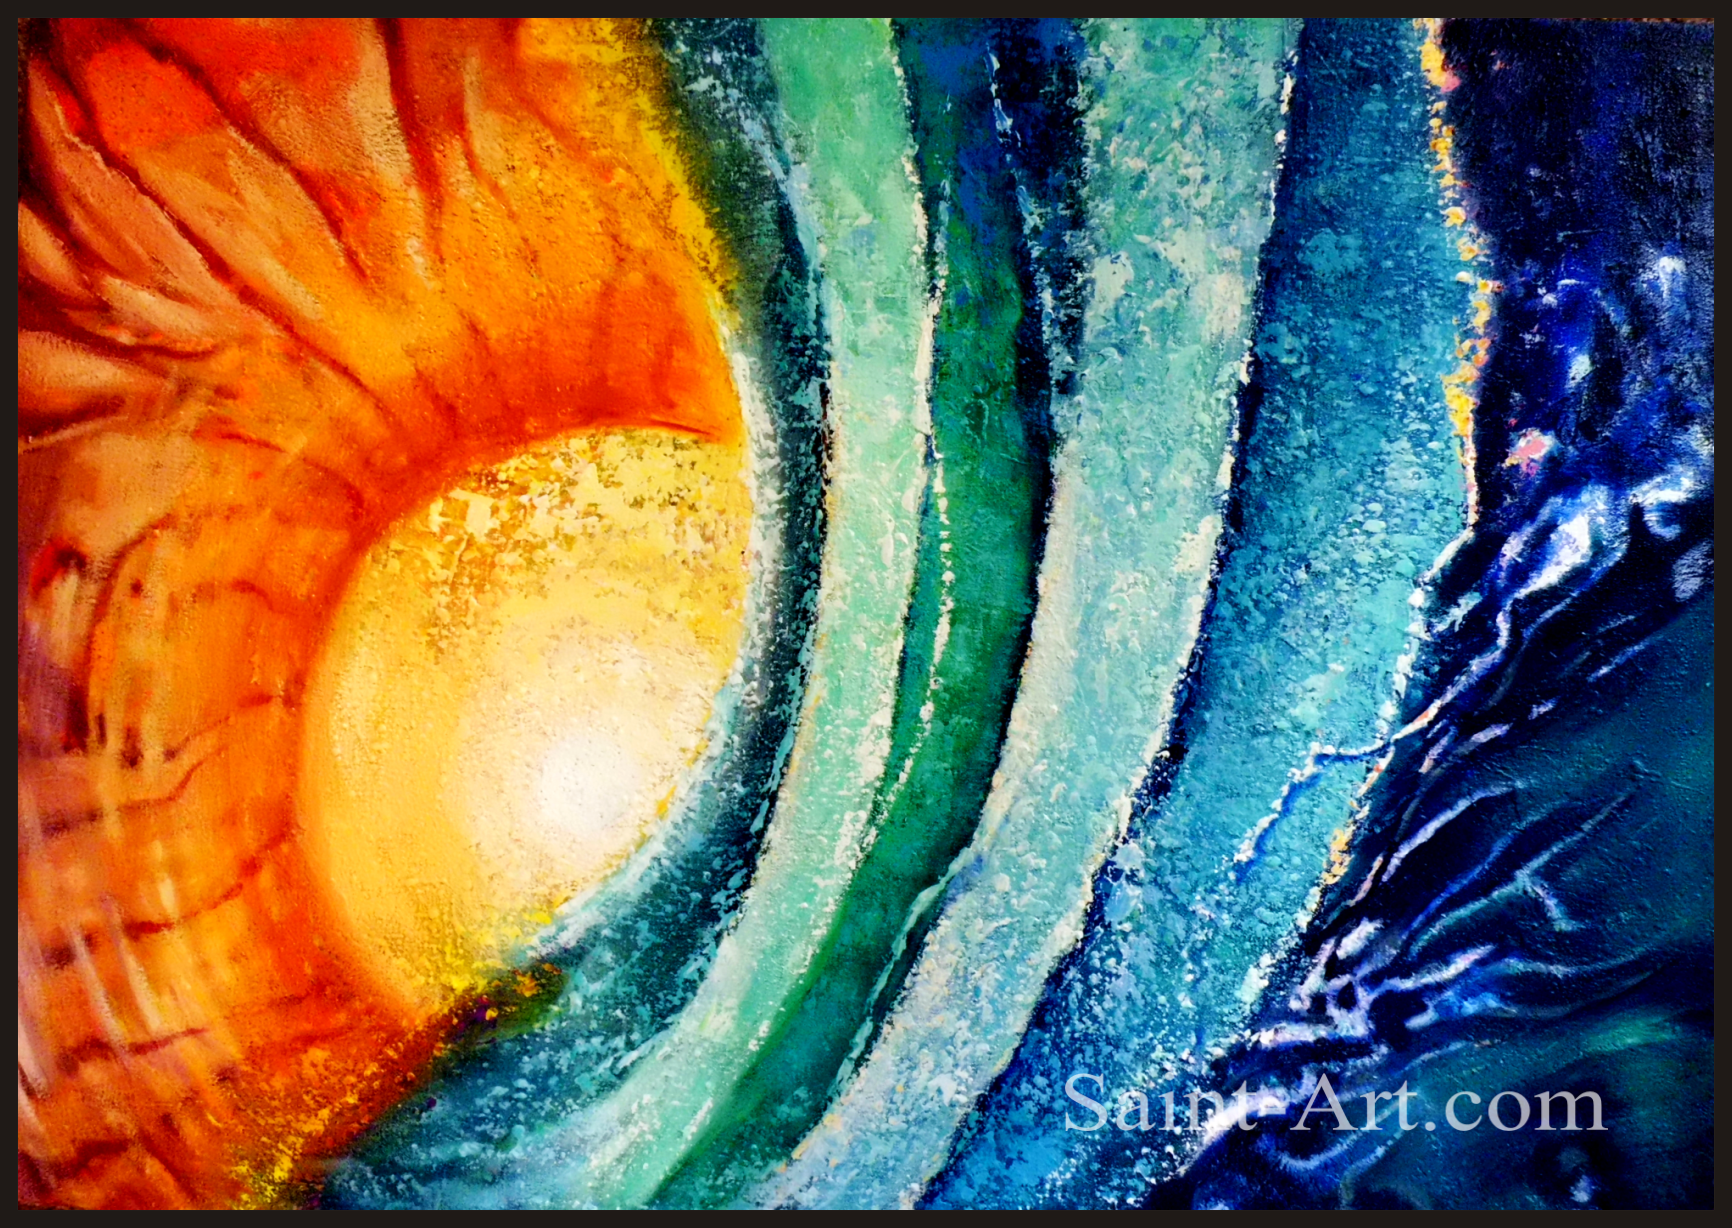 Space art blue waves of water over orange sun